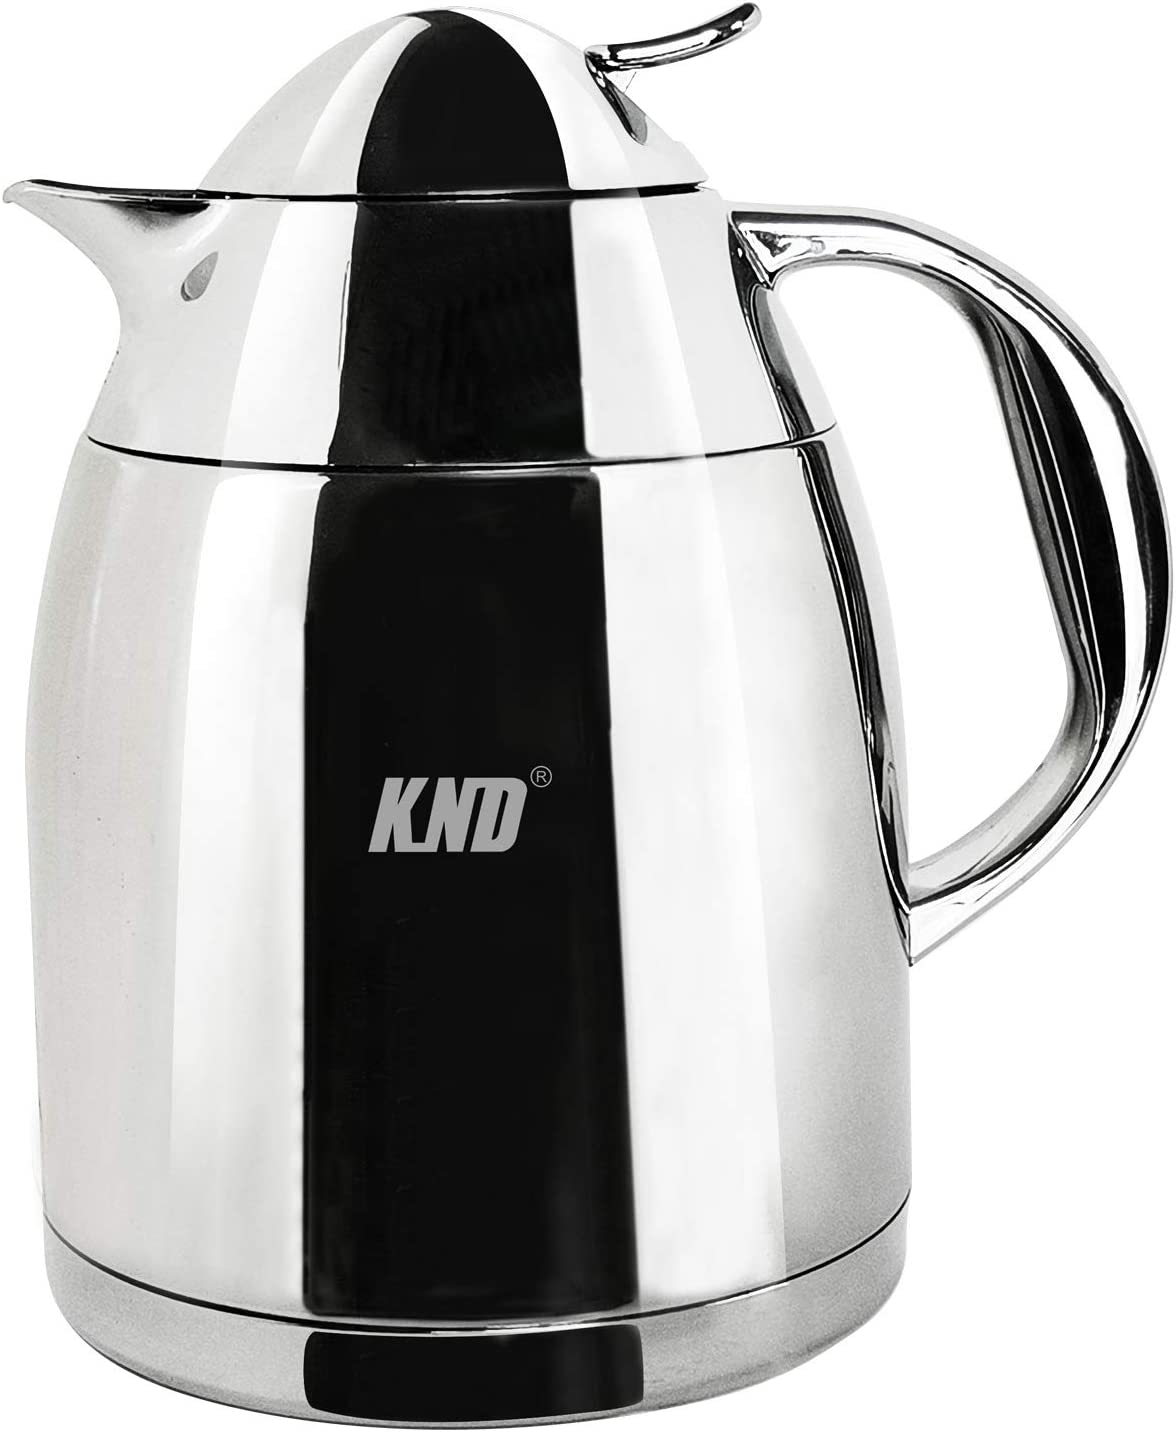 Sales of SALE items Limited time cheap sale from new works KND Thermal Coffee Carafe 52 Ounce Double 10 18 Steel Stainless